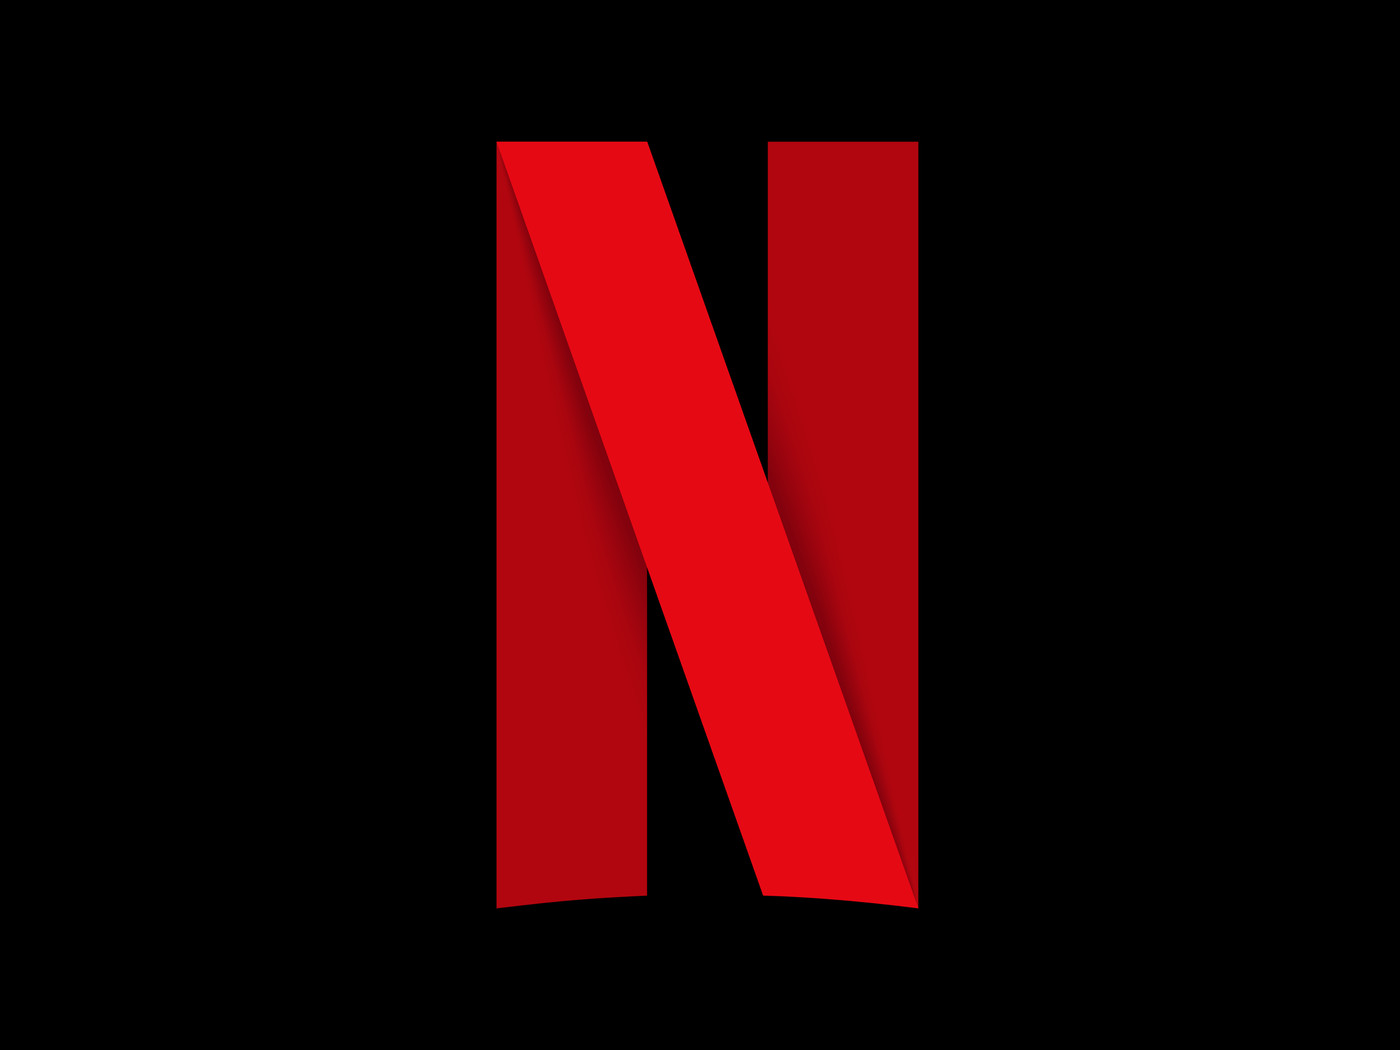 netflix icon wallpaper 66504